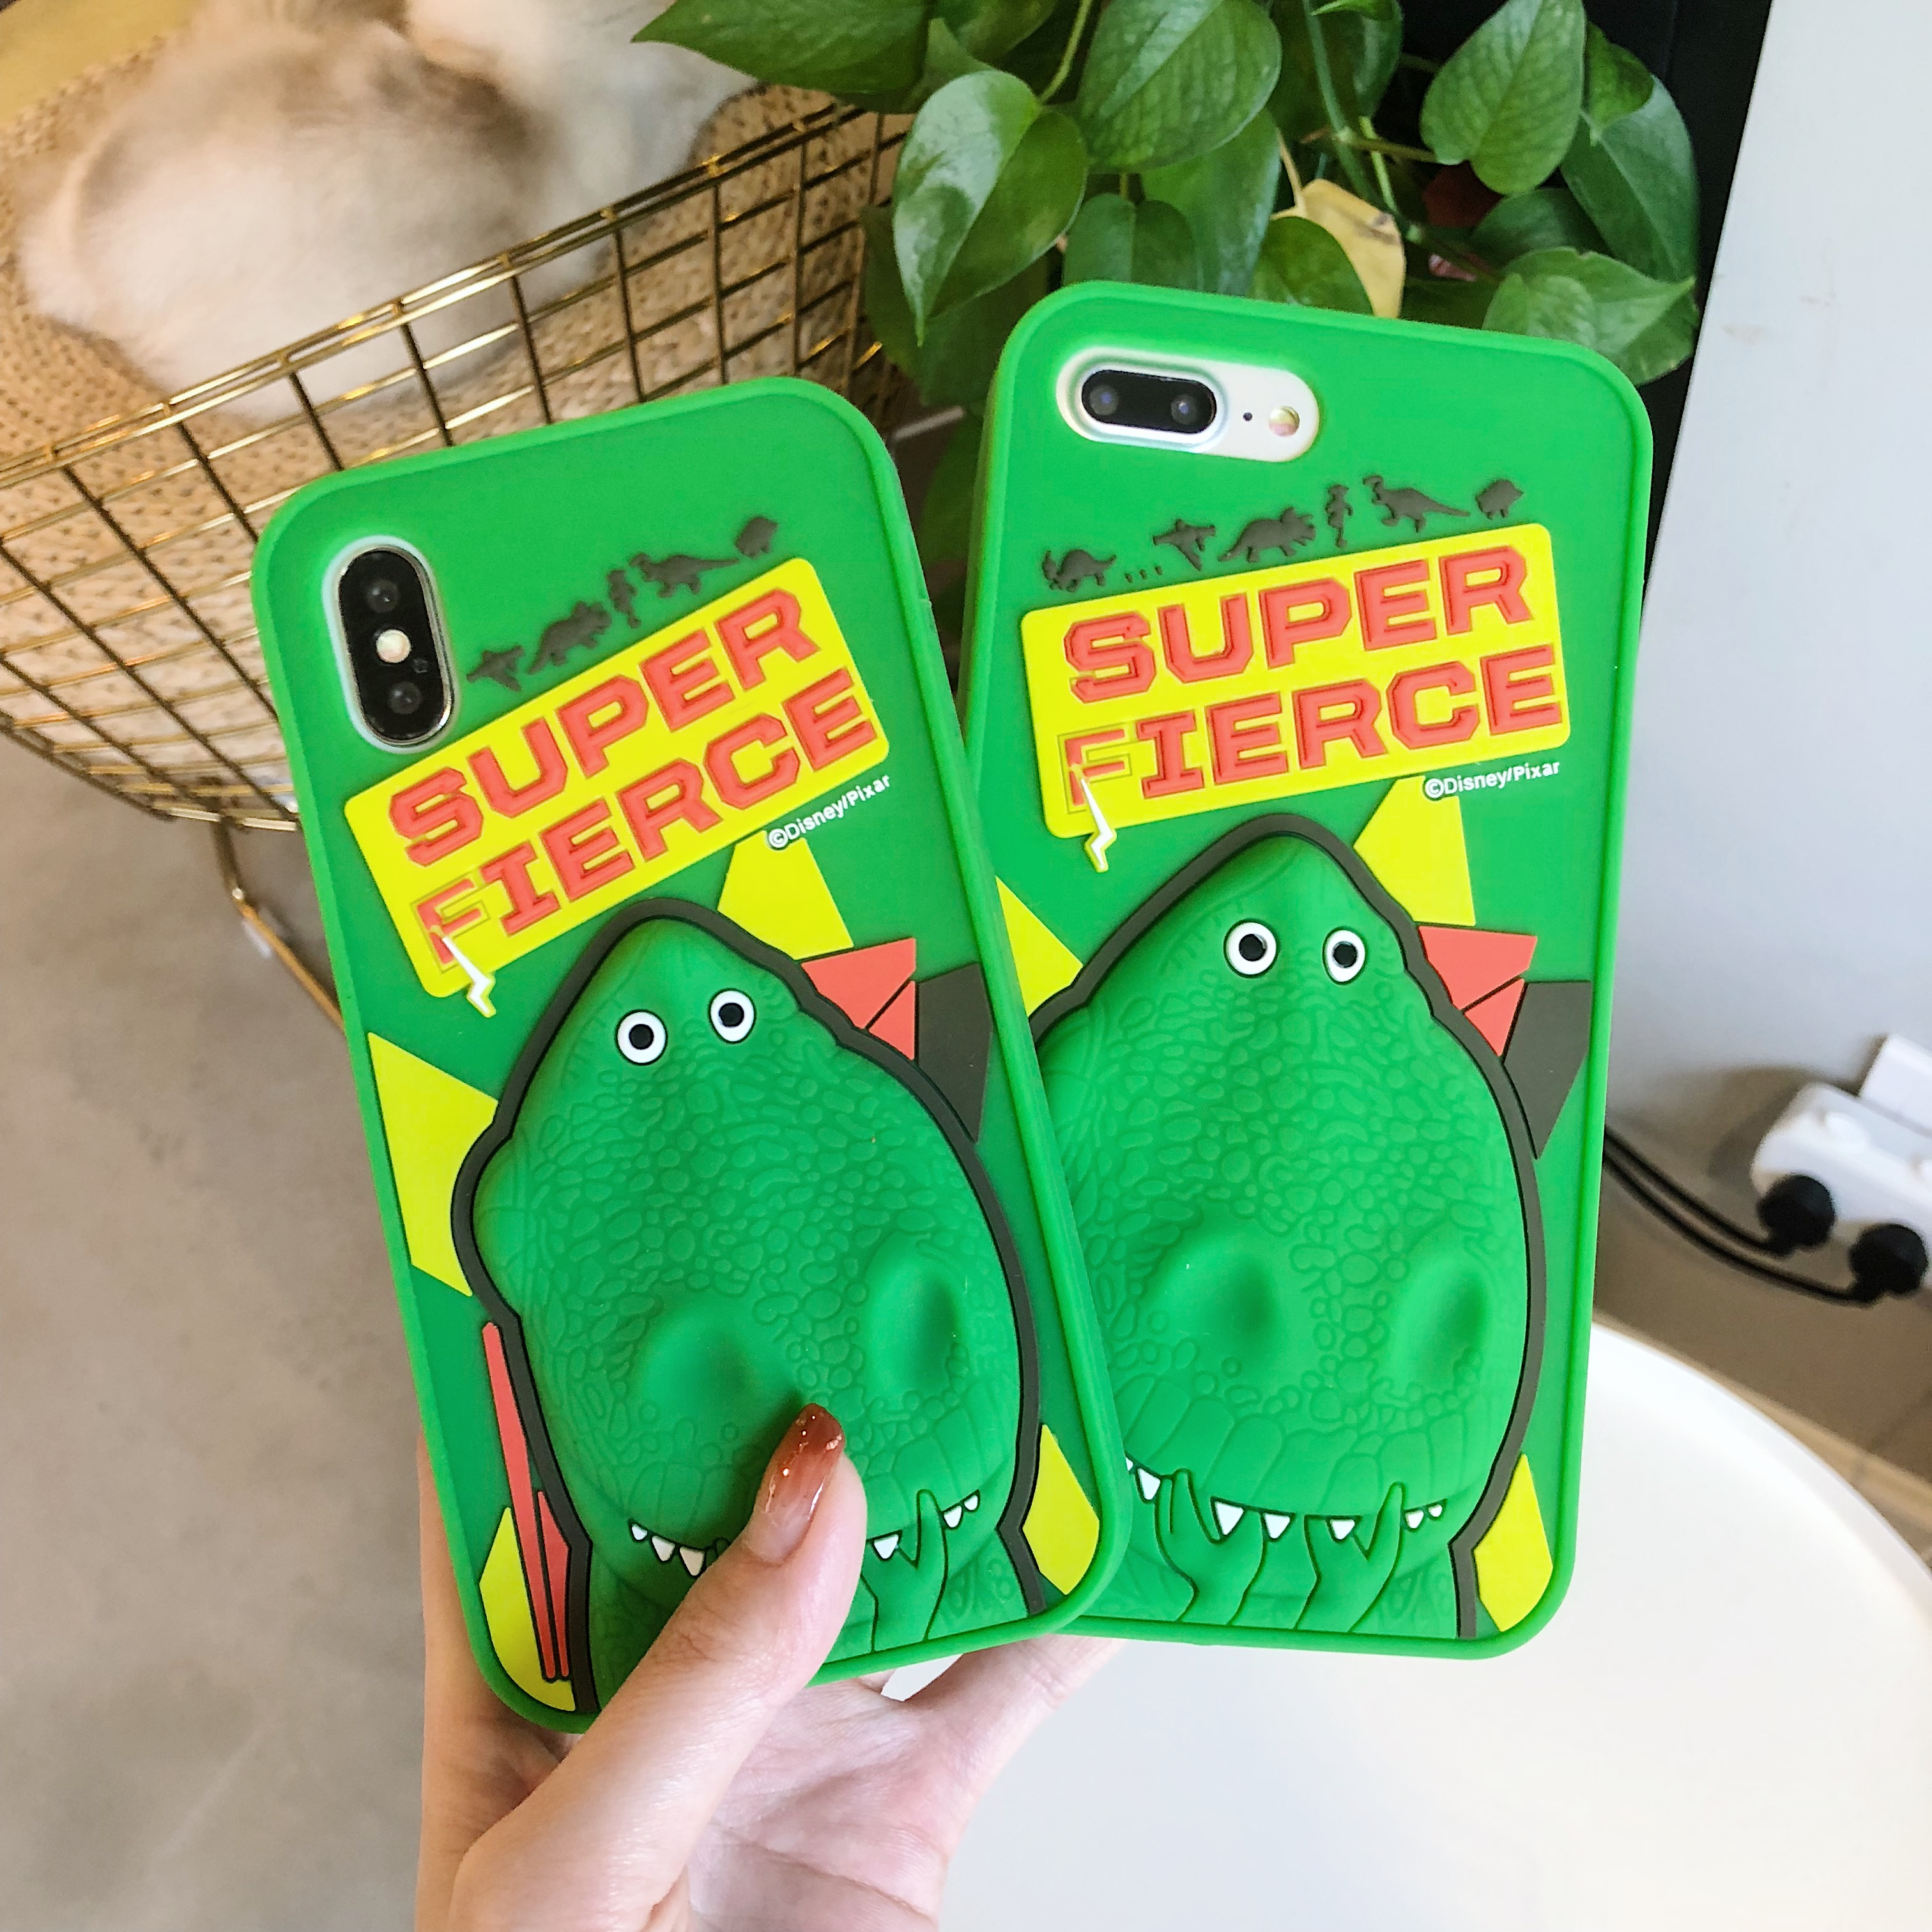 Silicone <font><b>Cases</b></font> for Apple <font><b>Iphone</b></font> 5s Se 6 6s <font><b>7</b></font> 8 Plus Cartoon Cute Toy Story Rex The Green <font><b>Dinosaur</b></font> Cover for <font><b>IPhone</b></font> X XR XS MAX image